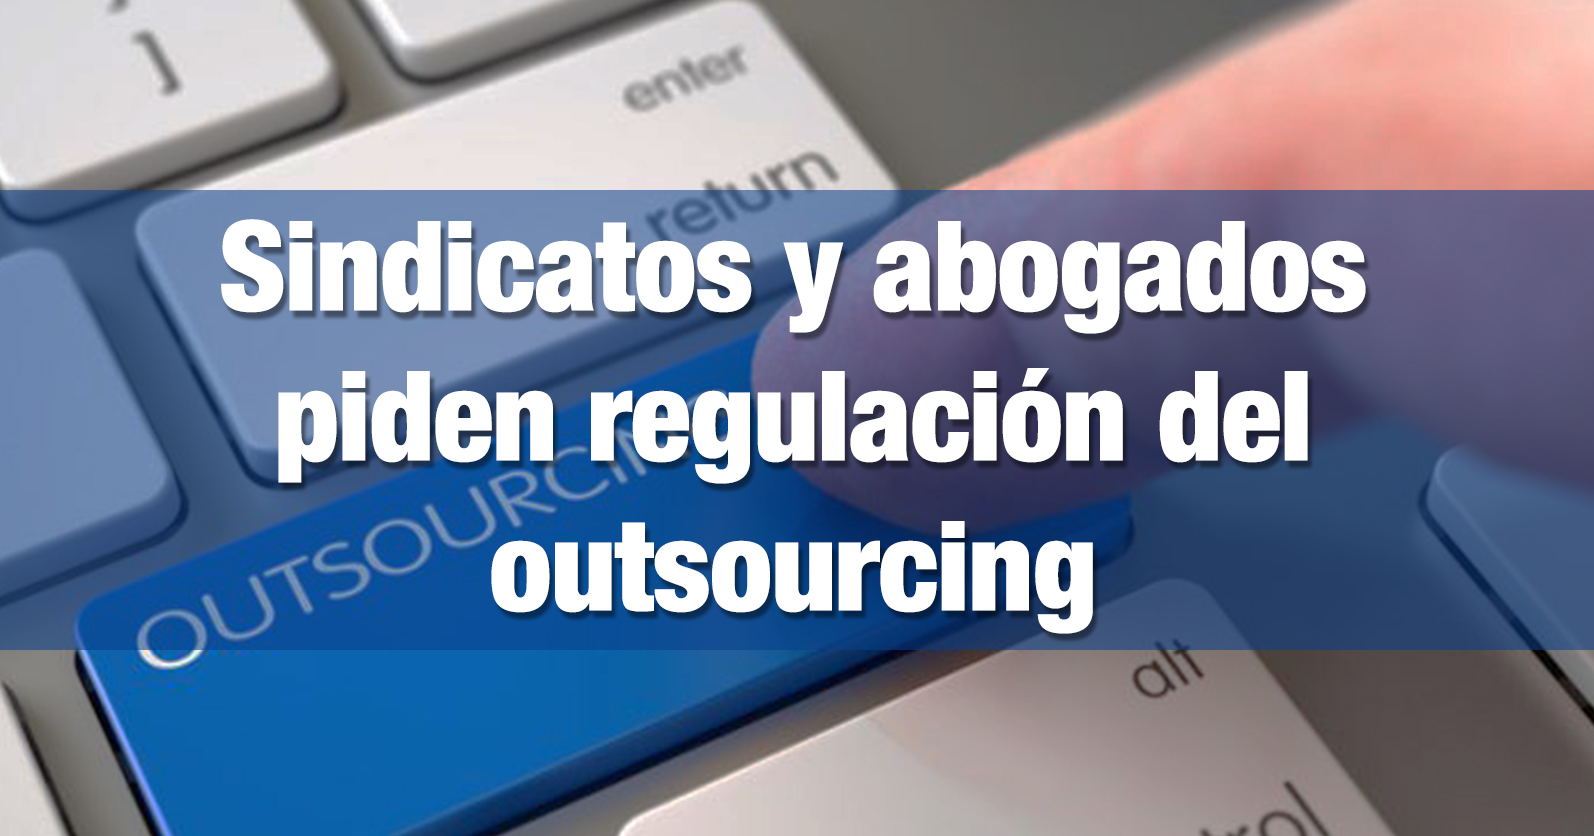 Sindicatos y abogados piden regulación del outsourcing